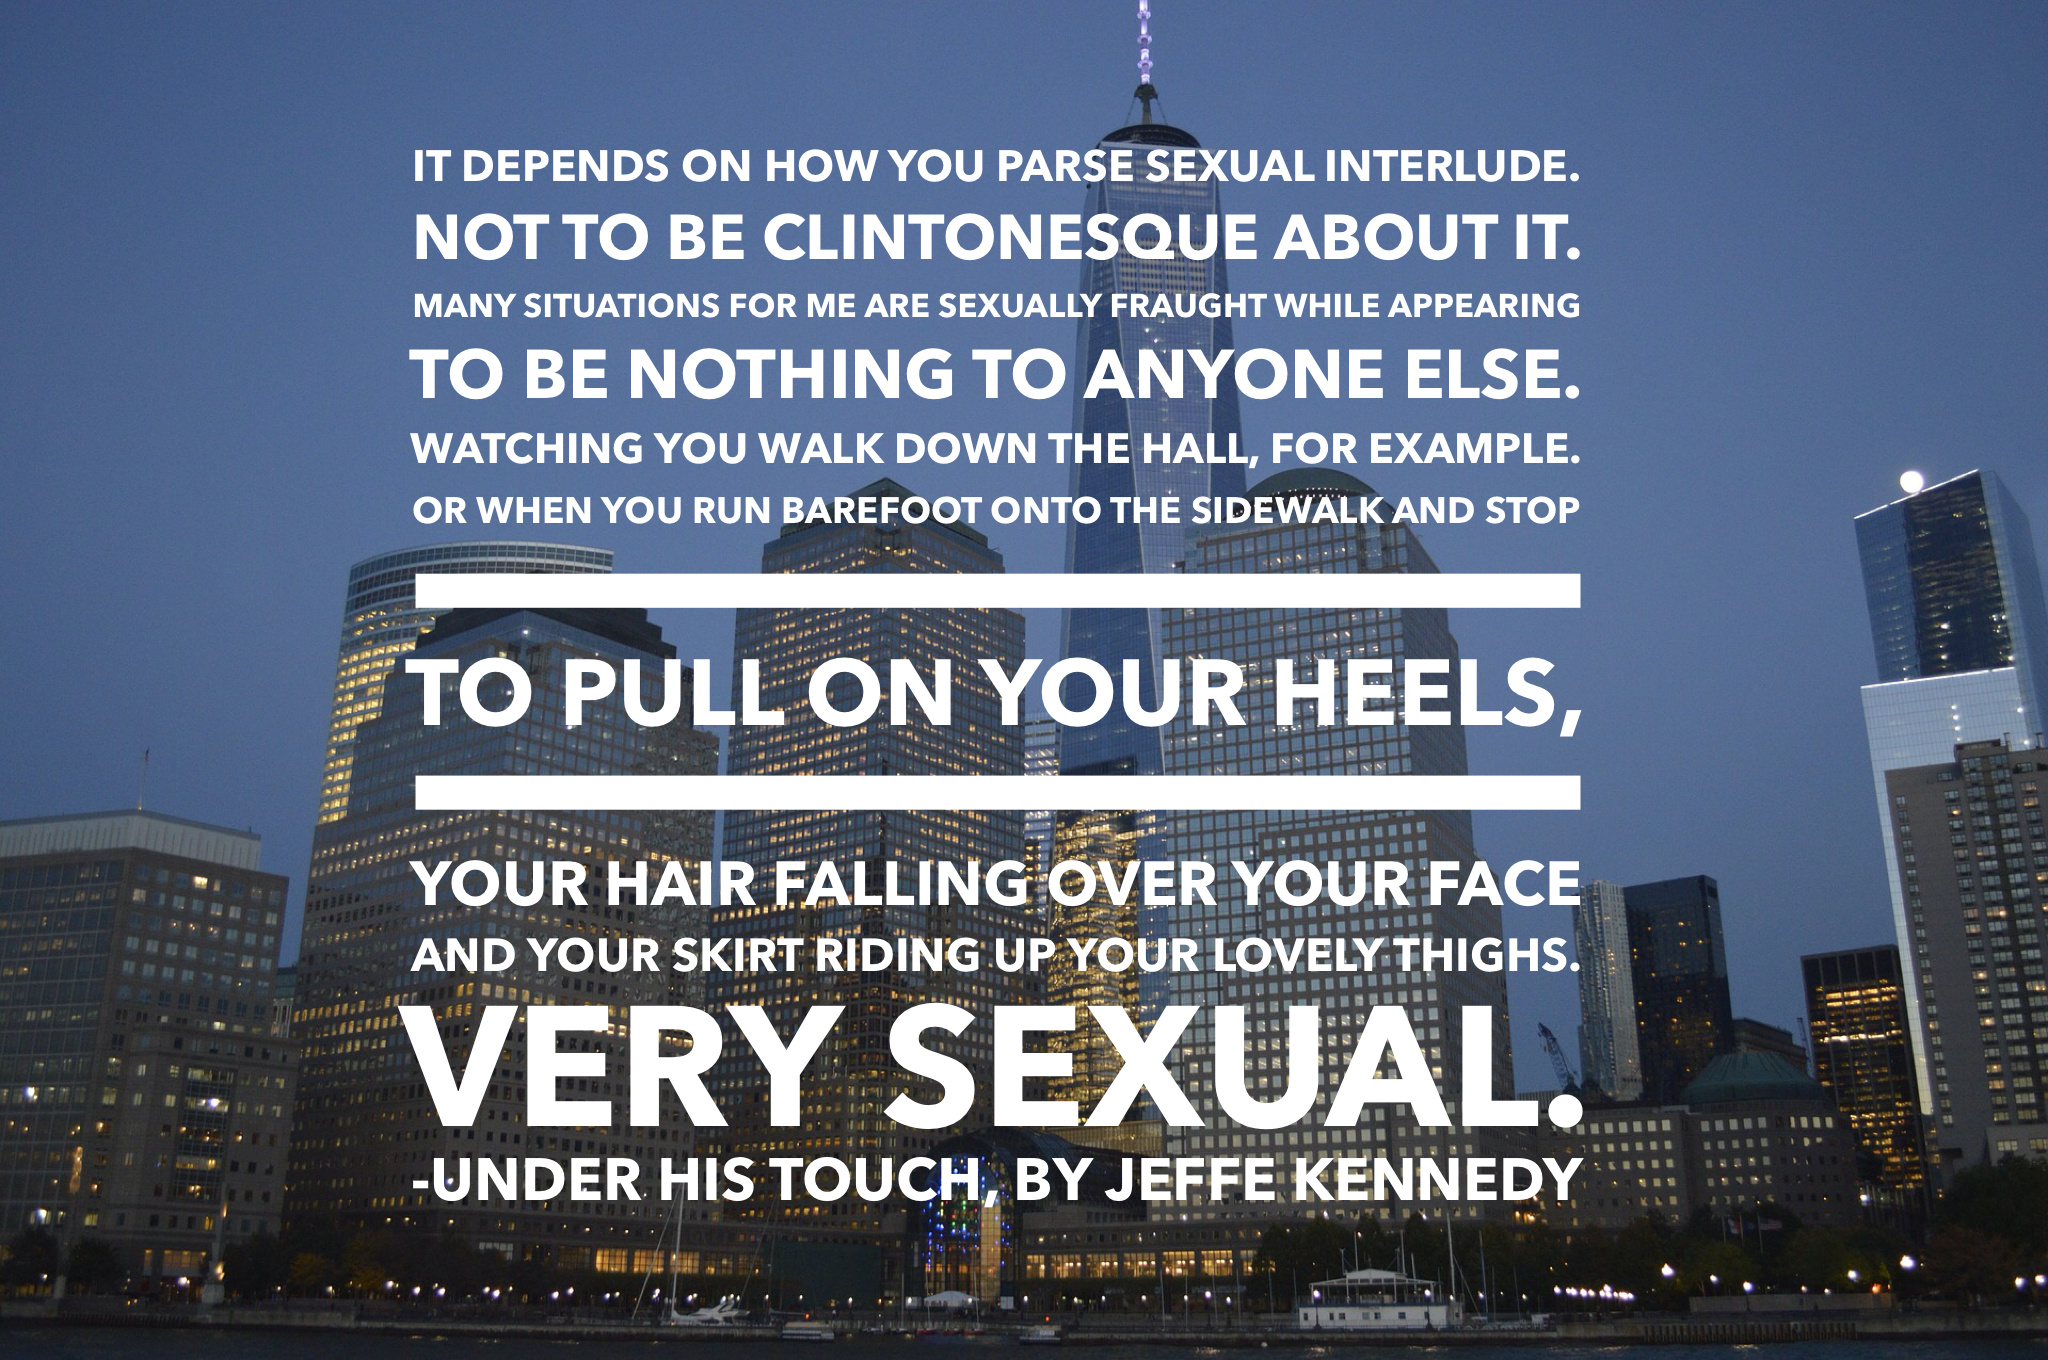 It depends on how you parse 'sexual interlude.' Not to be Clintonesque about it. Many situations for me are sexually fraught while appearing to be nothing to anyone else. Watching you walk down the hall, for example. Or when you run barefoot onto the sidewalk and stop to pull on your heels, your hair falling over your face and your skirt riding up your lovely thighs. Very sexual.